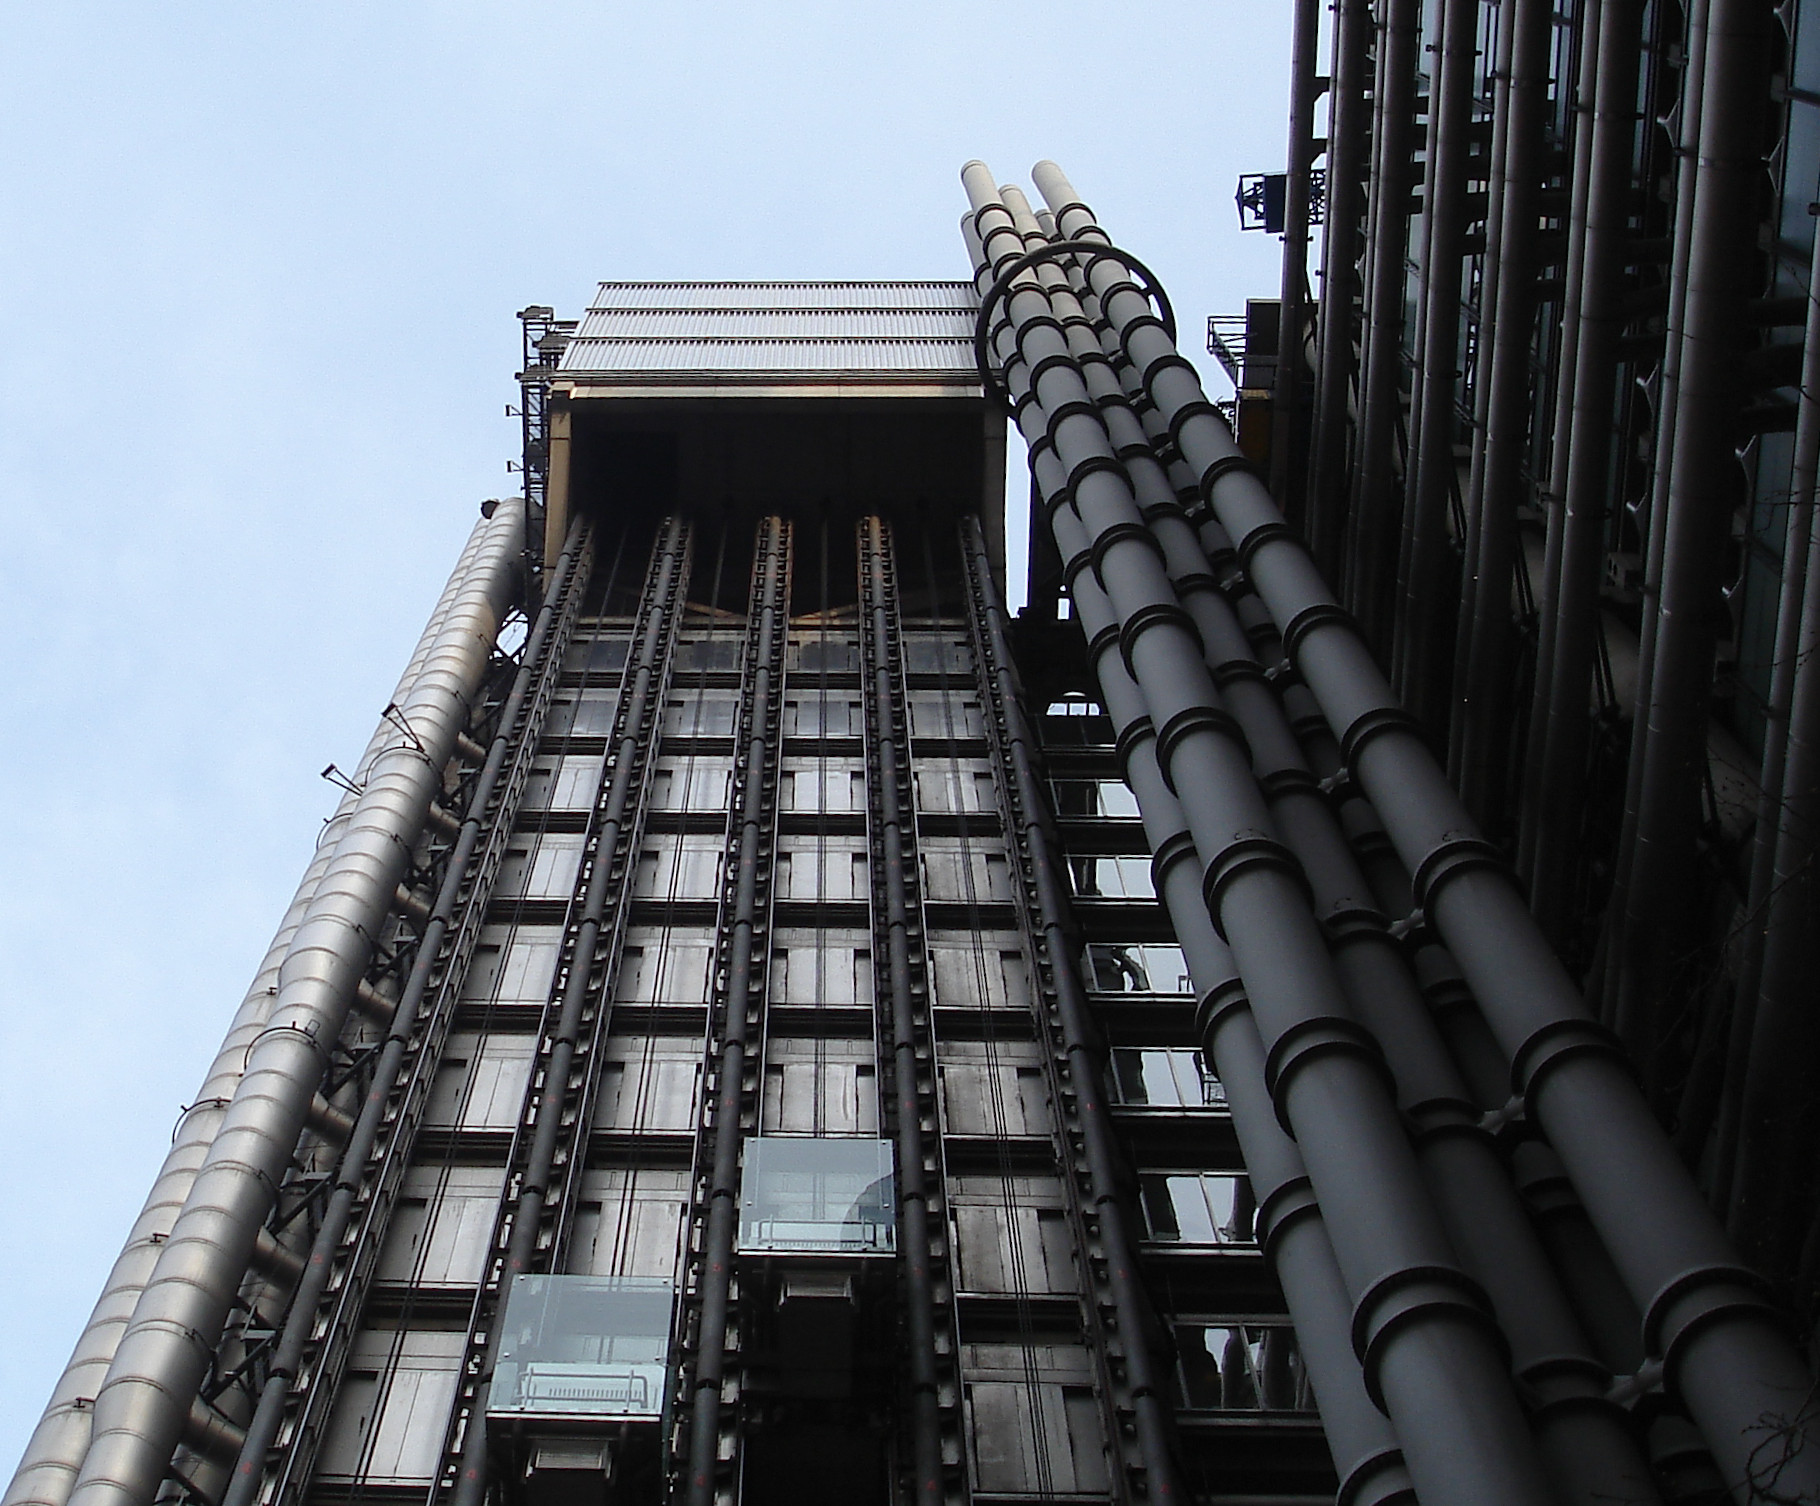 Gallery of ad classics lloyd 39 s of london building for Lloyds architecture planning interiors